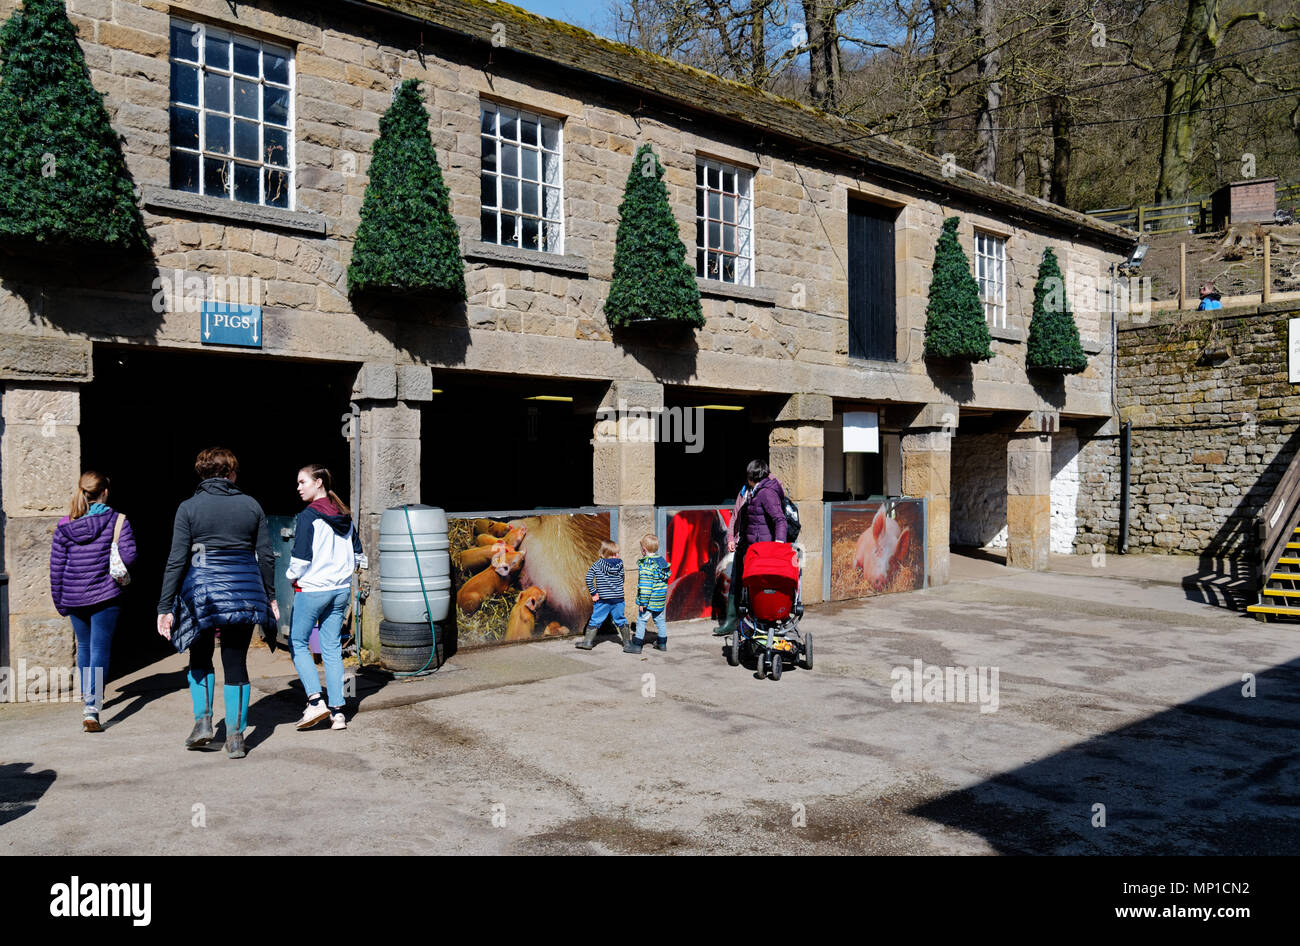 People going in to see the pigs in the Farmyard at Chatsworth House, Bakewell, Derbyshire - Stock Image